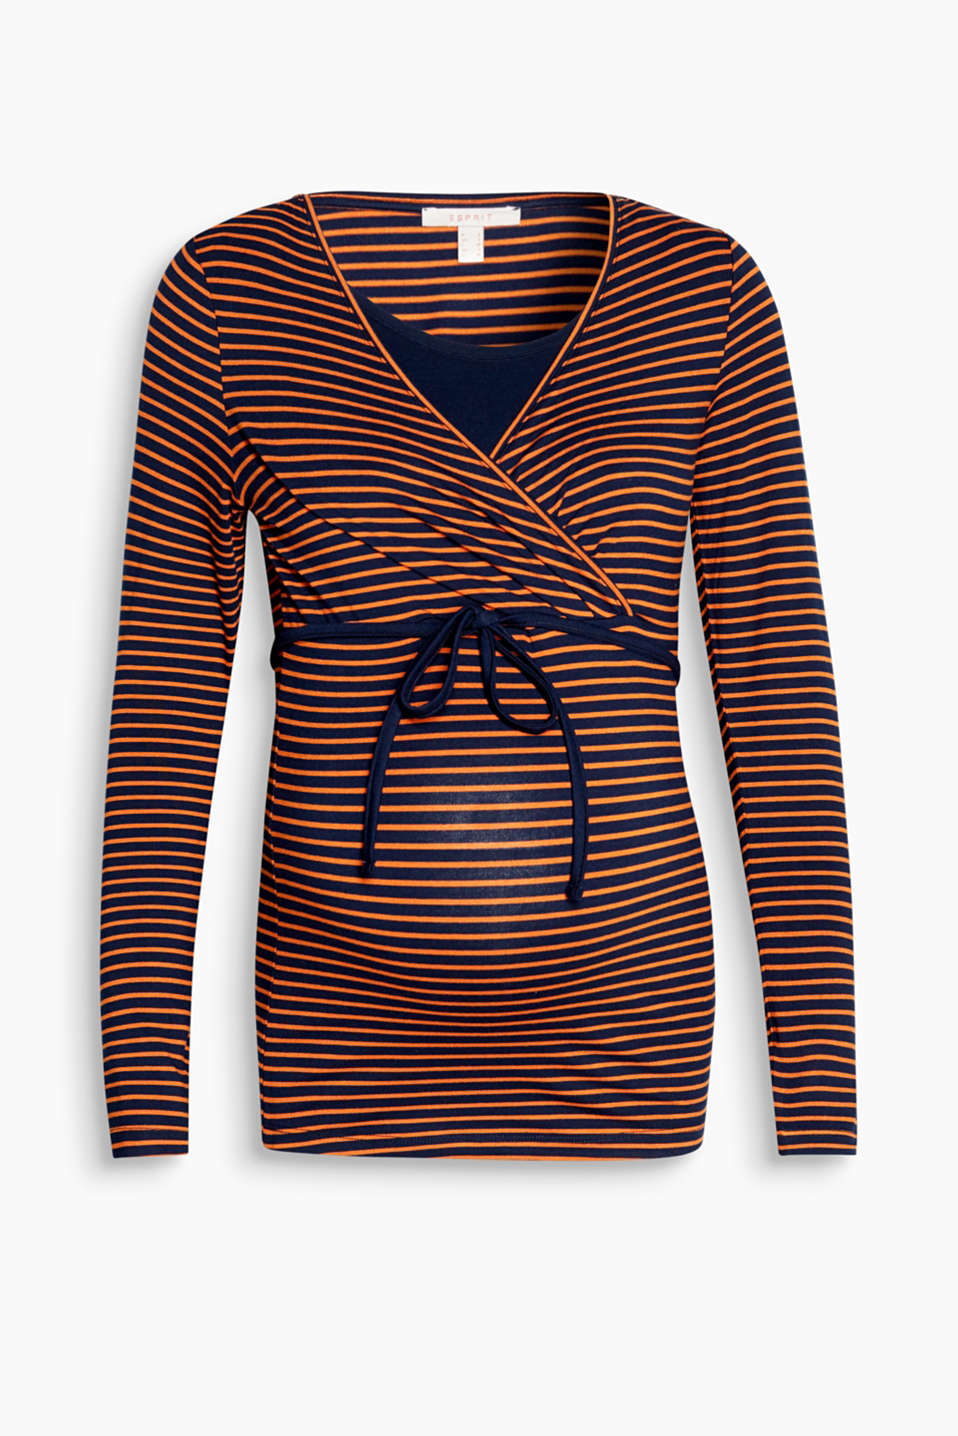 Striped, stretchy long sleeve nursing top